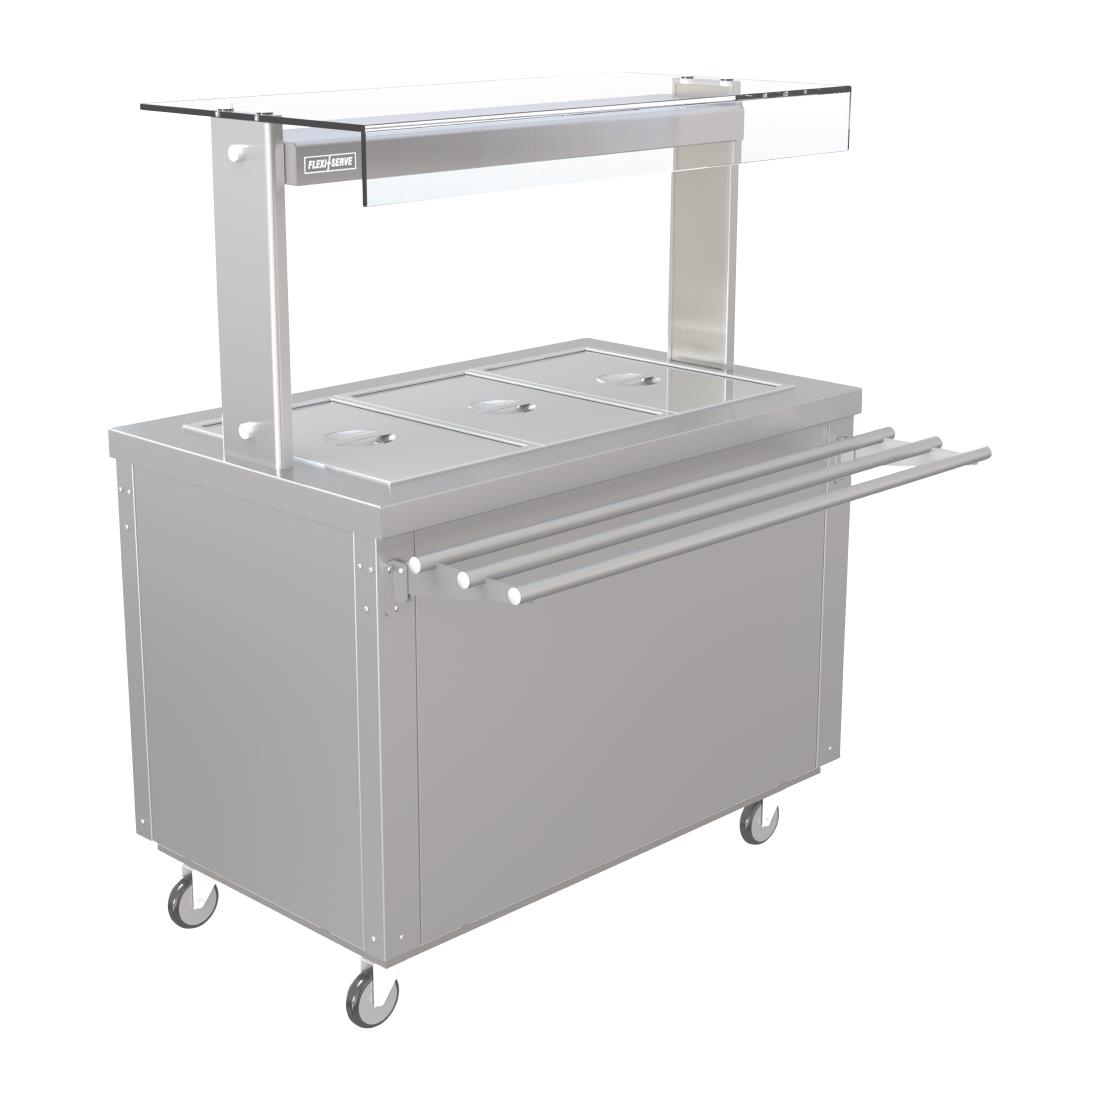 Image of Parry Hot Cupboard with Heated Bain Marie 1160mm FS-HB3PACK